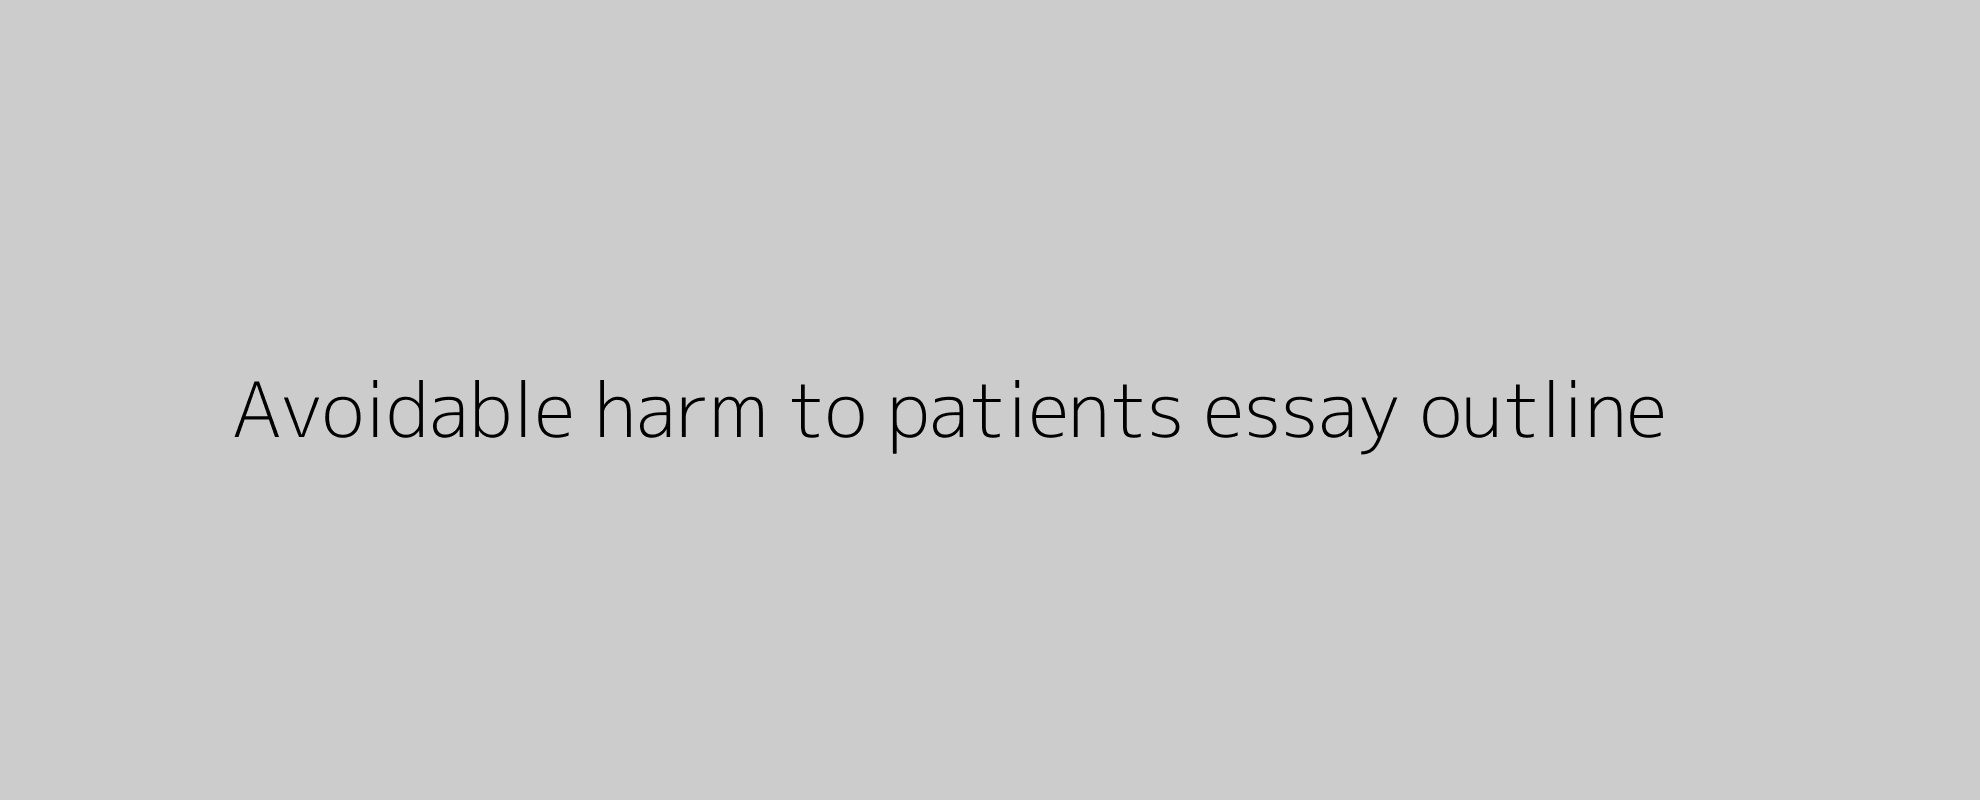 Avoidable harm to patients essay outline